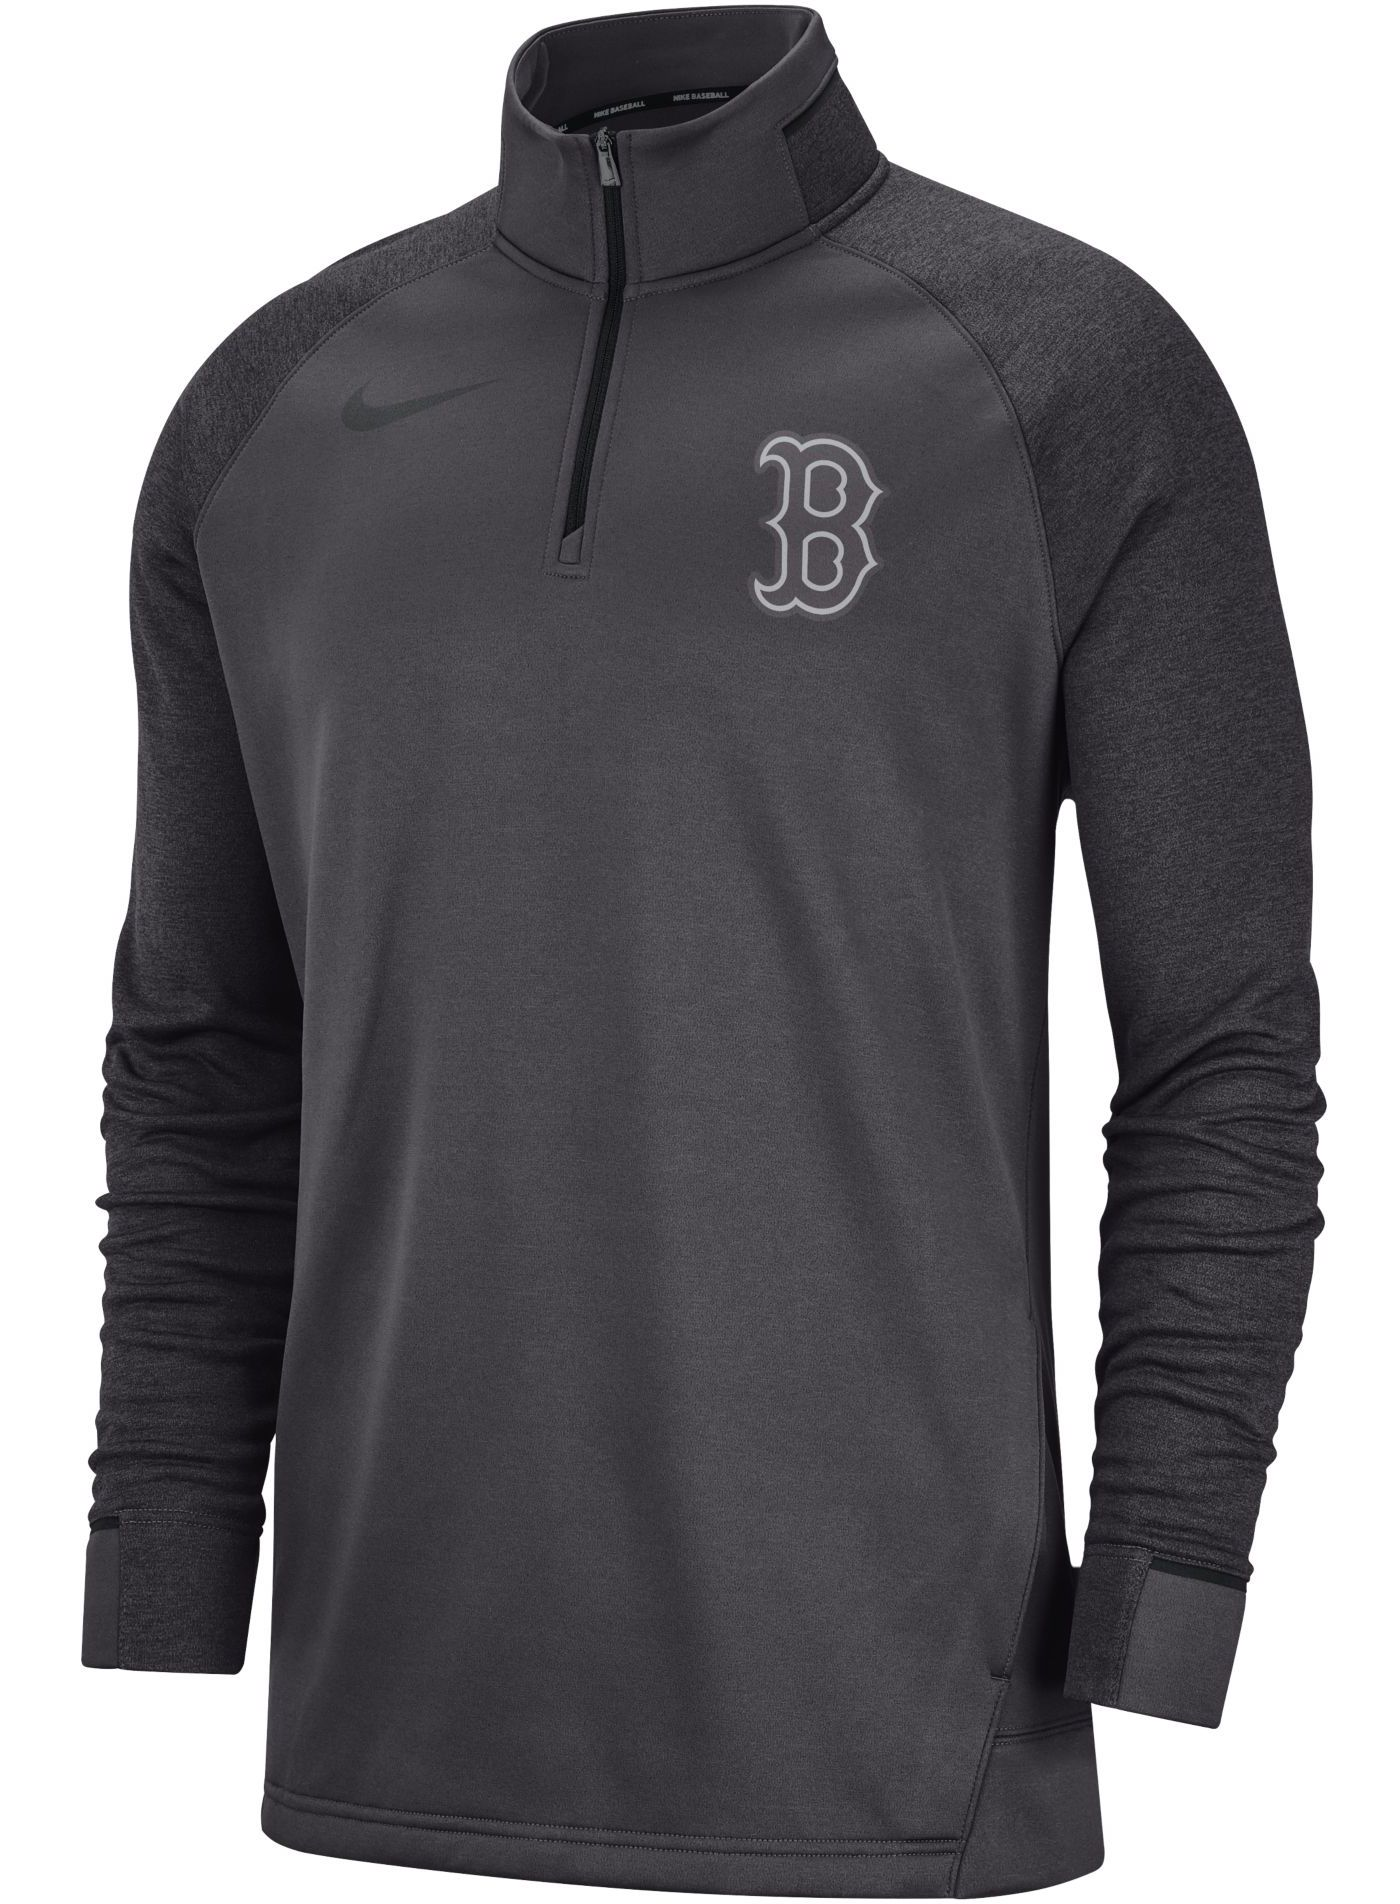 Nike Men's Boston Red Sox Dri-FIT Elite Half-Zip Pullover